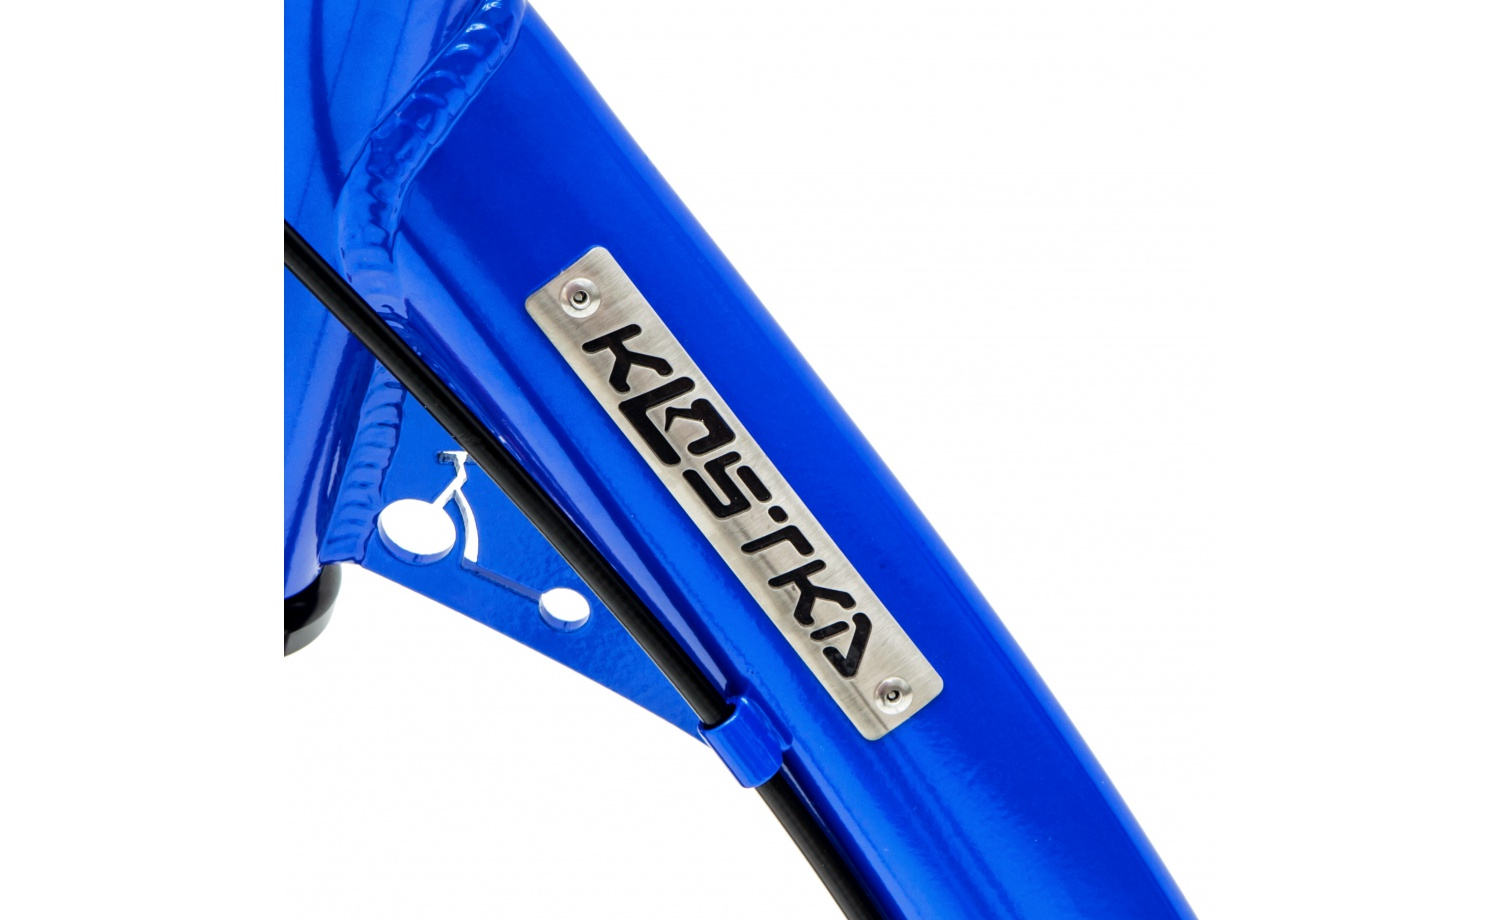 Tretroller KOSTKA TOUR MAX (G5) - 20 years limited edition